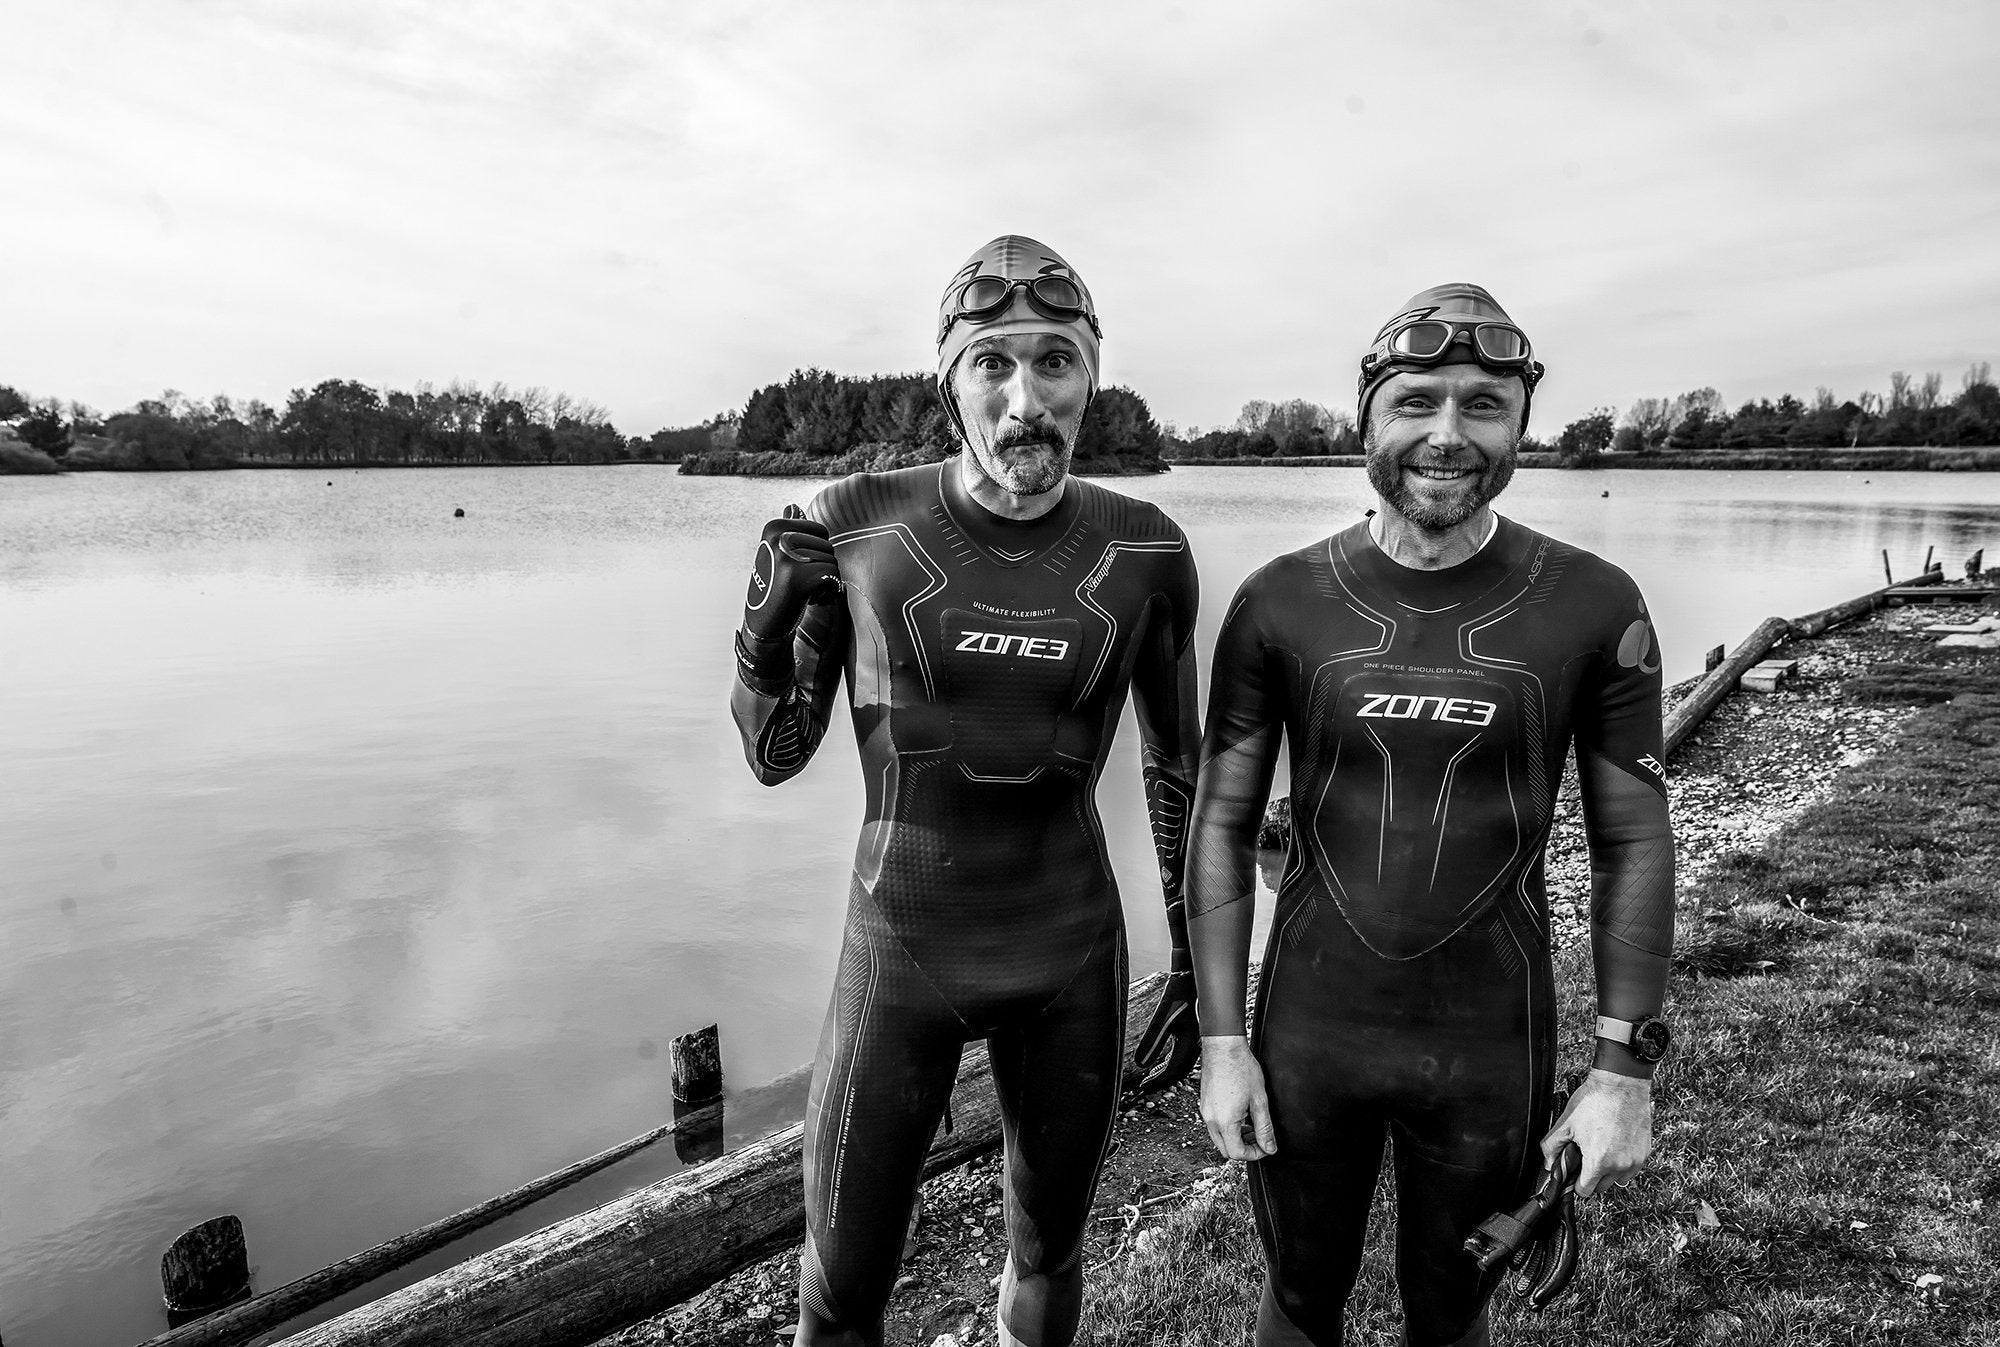 A Day with Tim Don and 220 Triathlon – What we Learnt